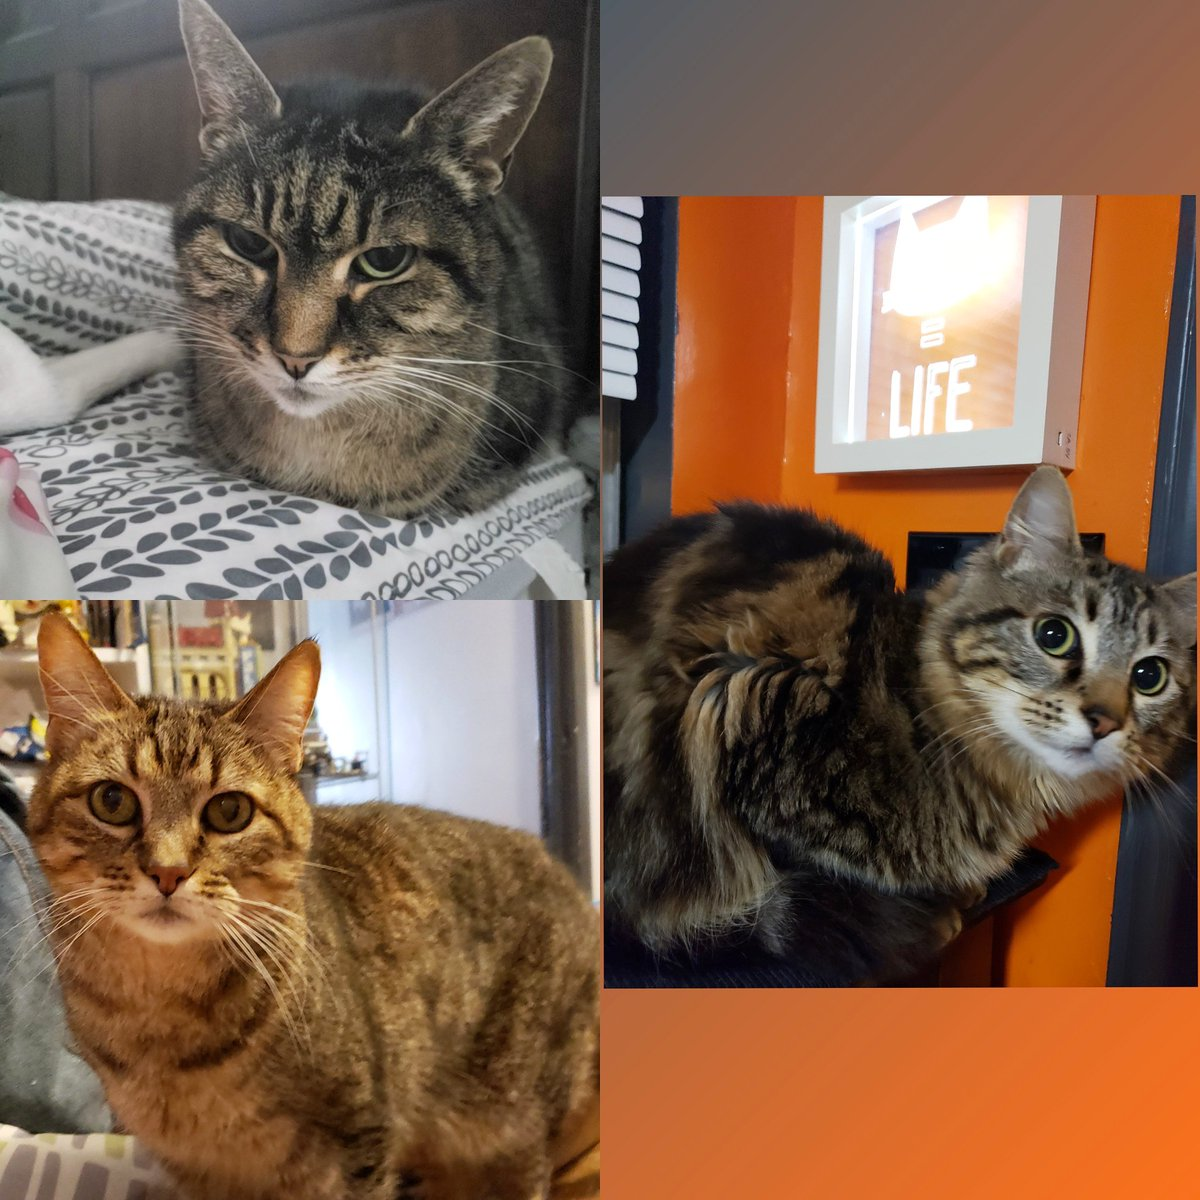 A study in cat loaf.  Our three kitties, from top left going clockwise: Jaina, Mister Mews, and Valentine.  #CatsOnTwitter<br>http://pic.twitter.com/wSVroHxBOT